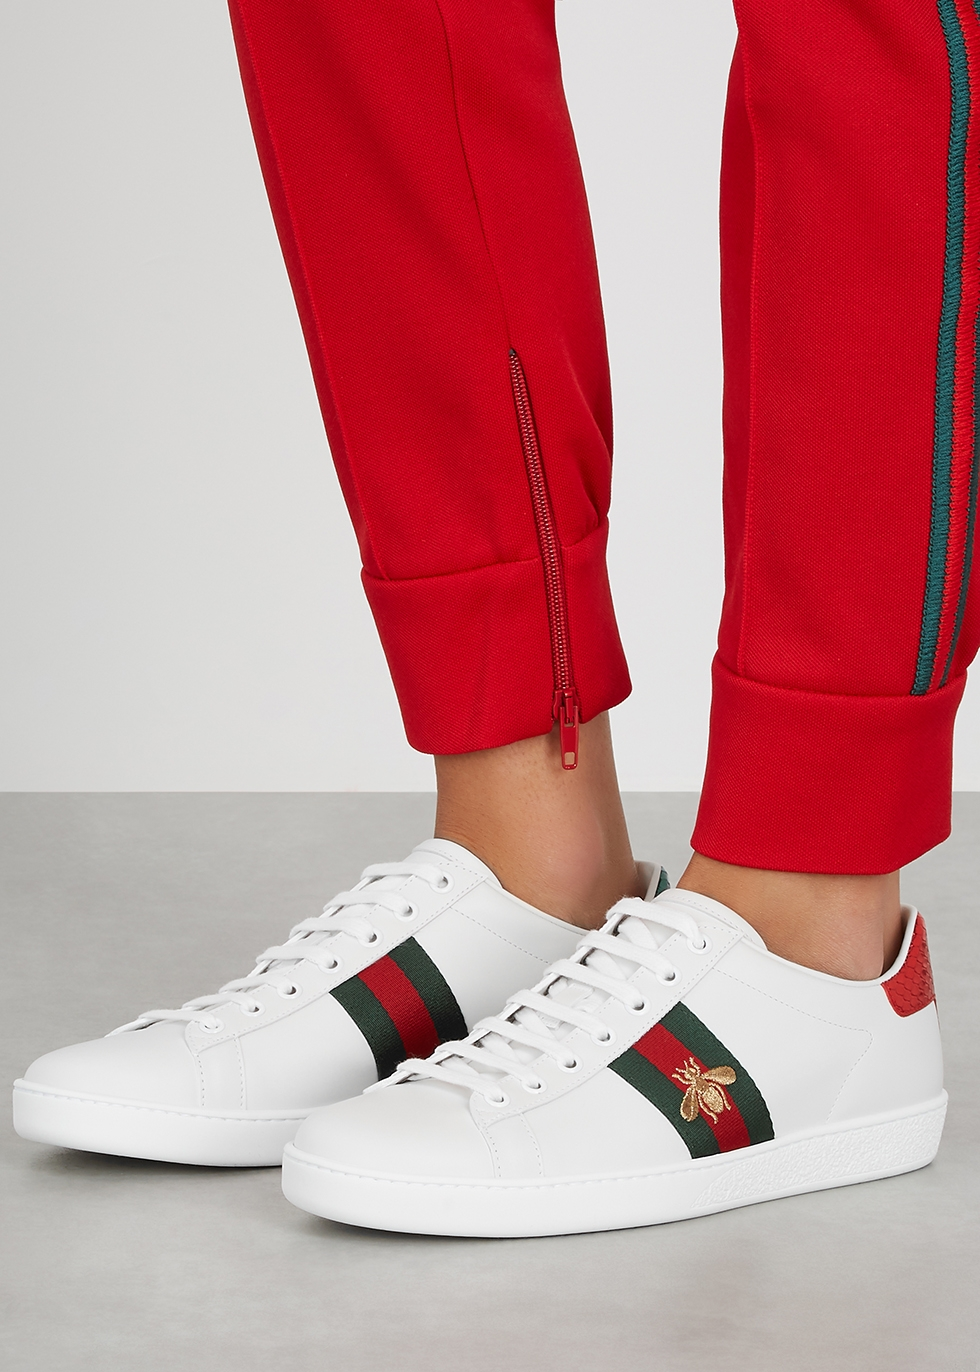 Gucci Ace embroidered white leather